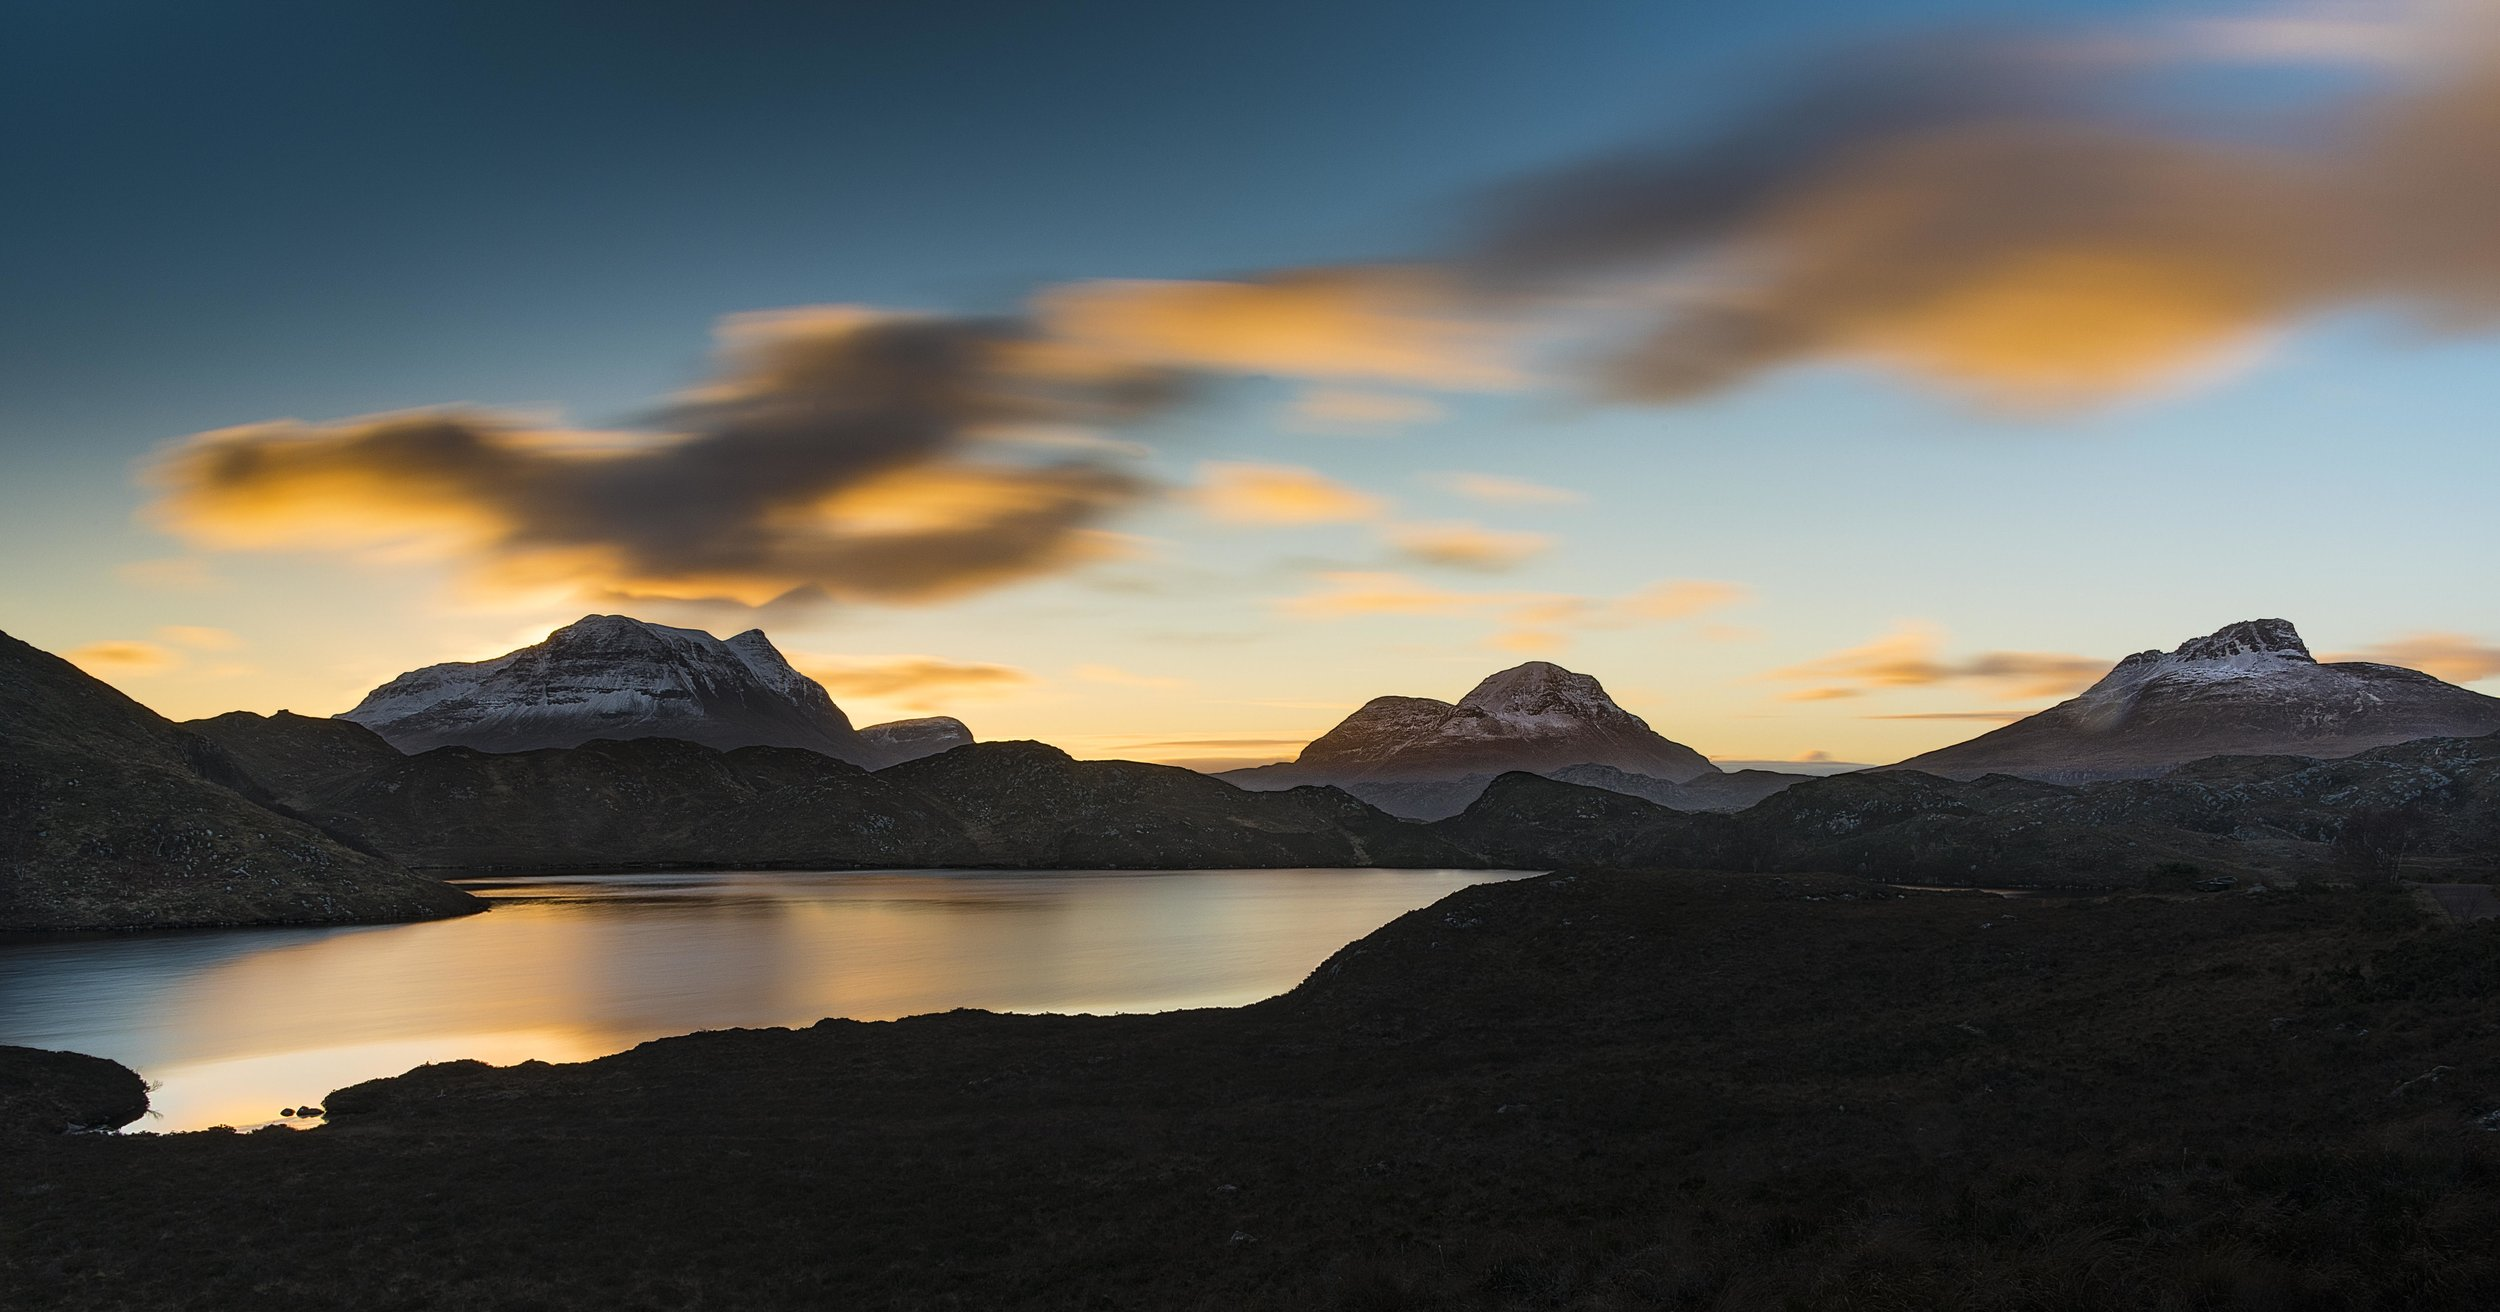 assynt+5561cleaned+-+Dawn+II.jpg